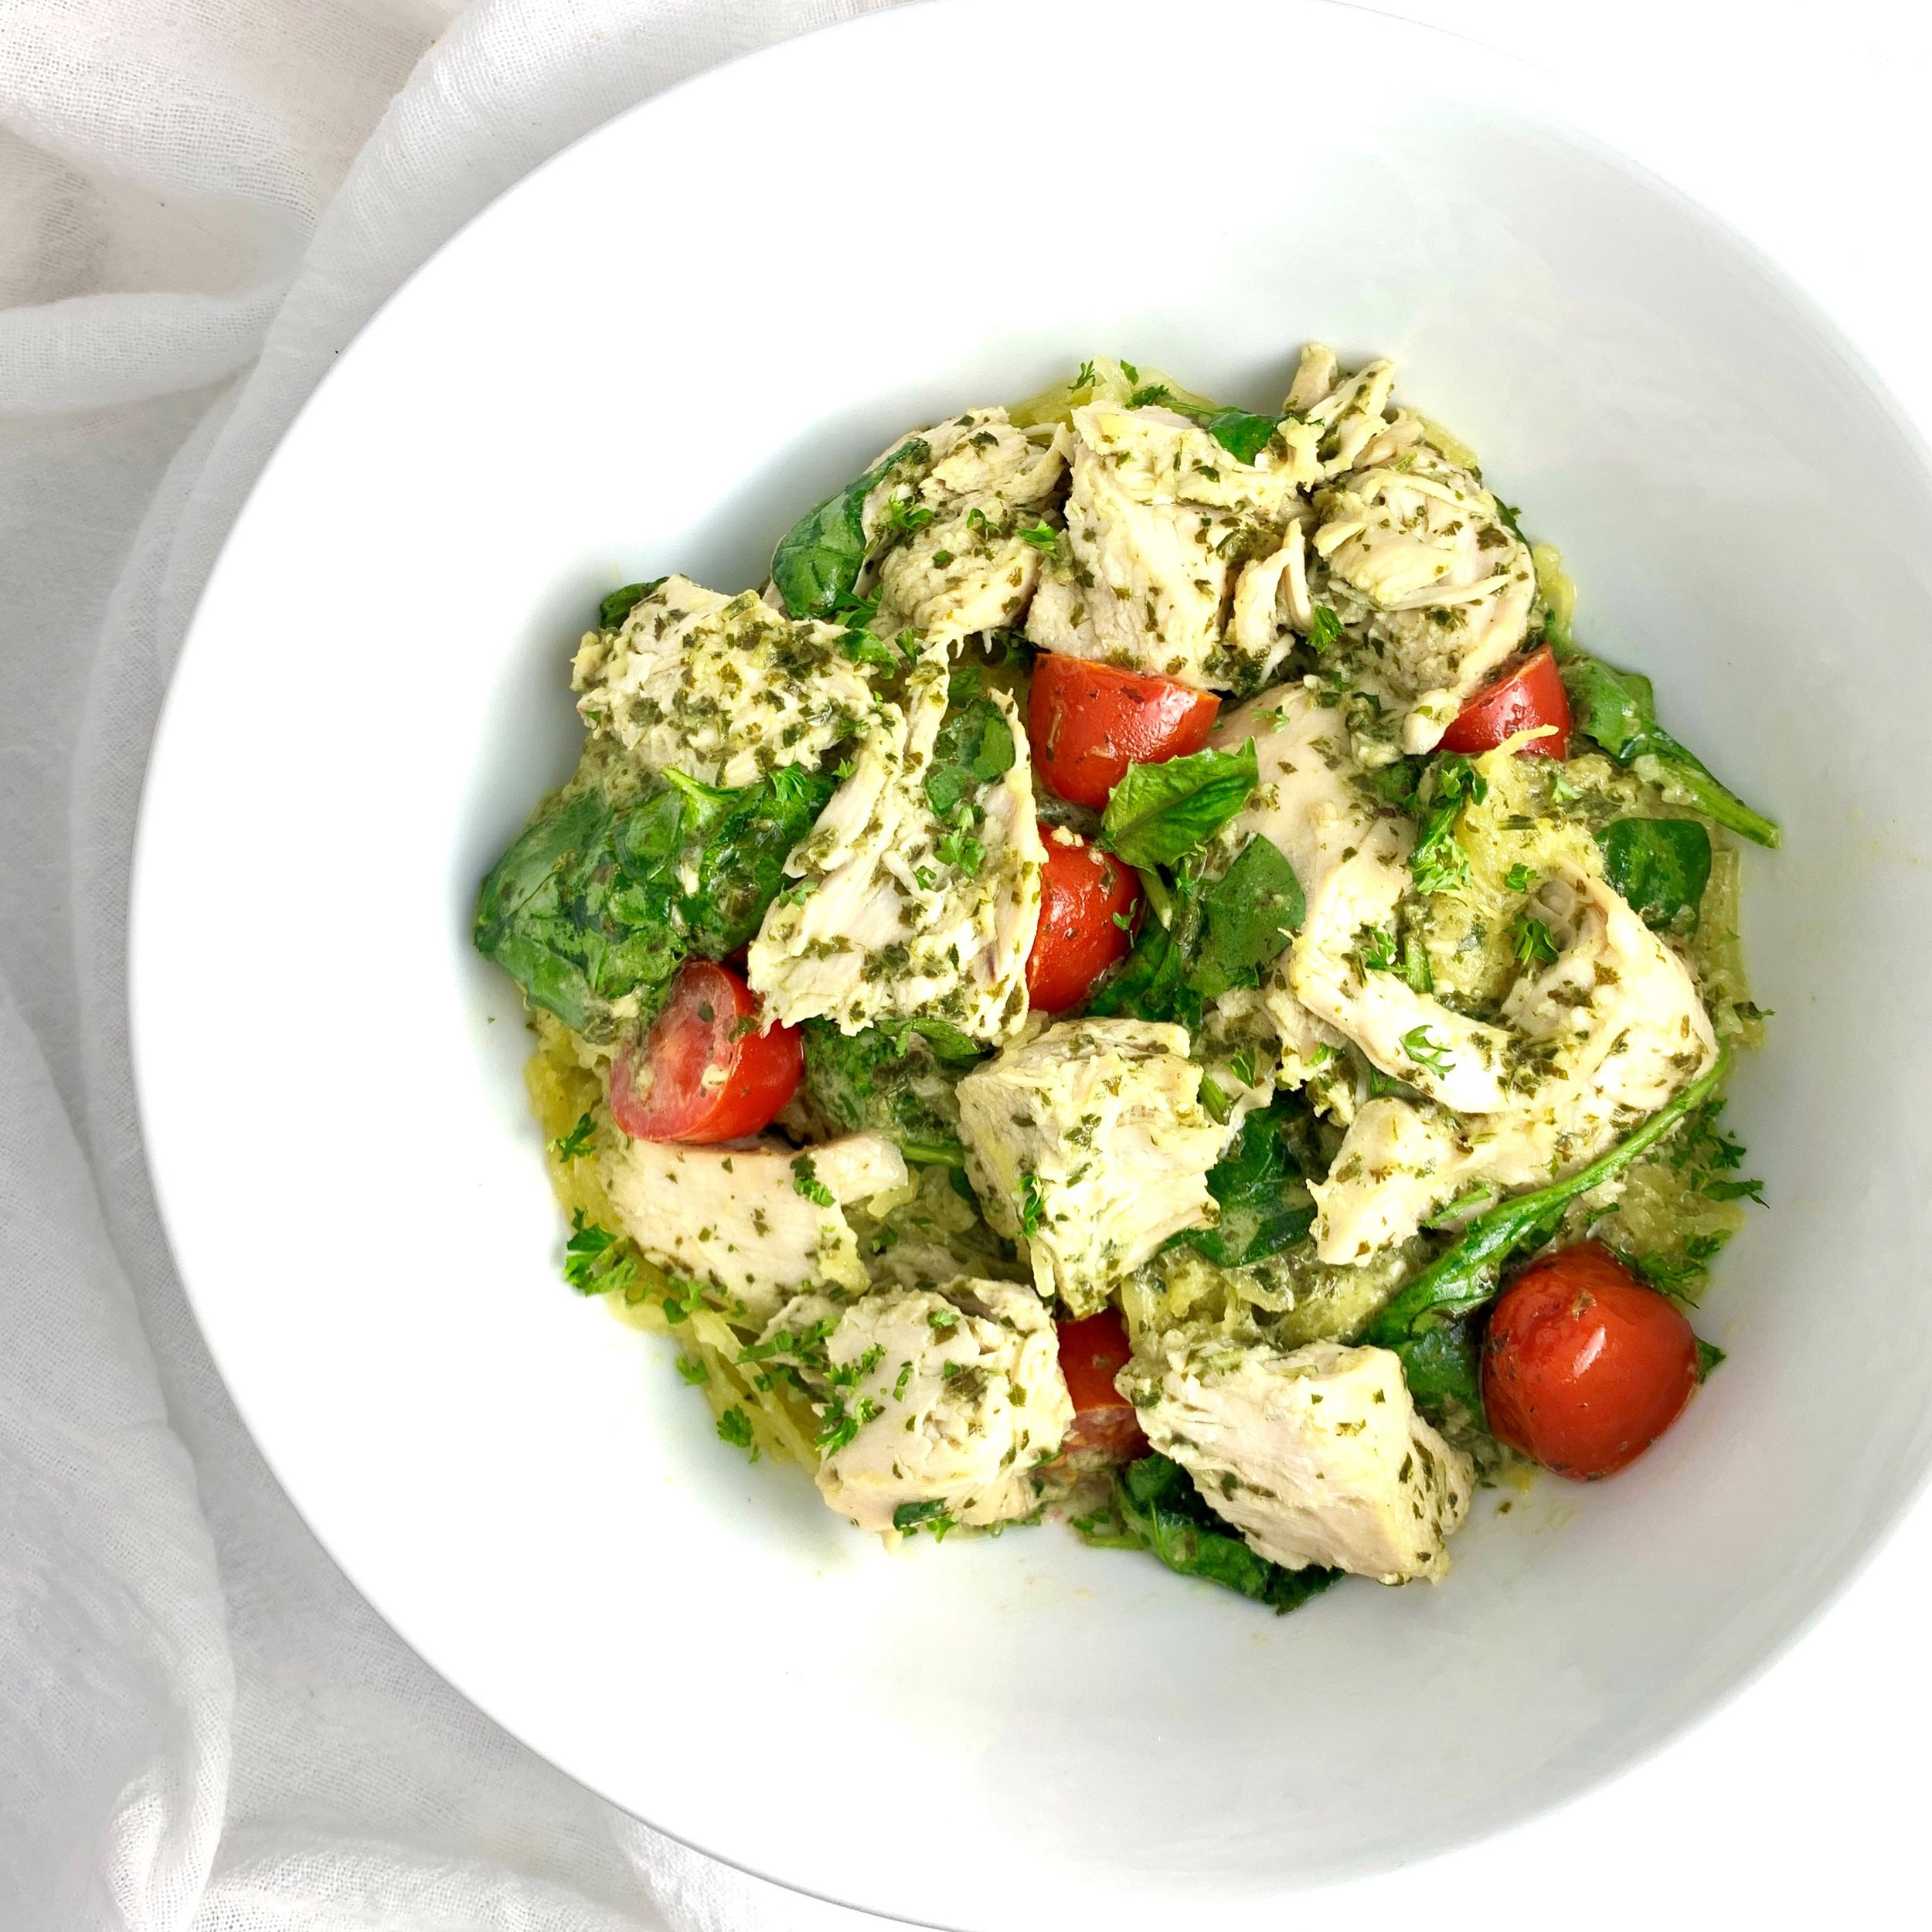 Creamy Pesto & Chicken Bake 1.jpg